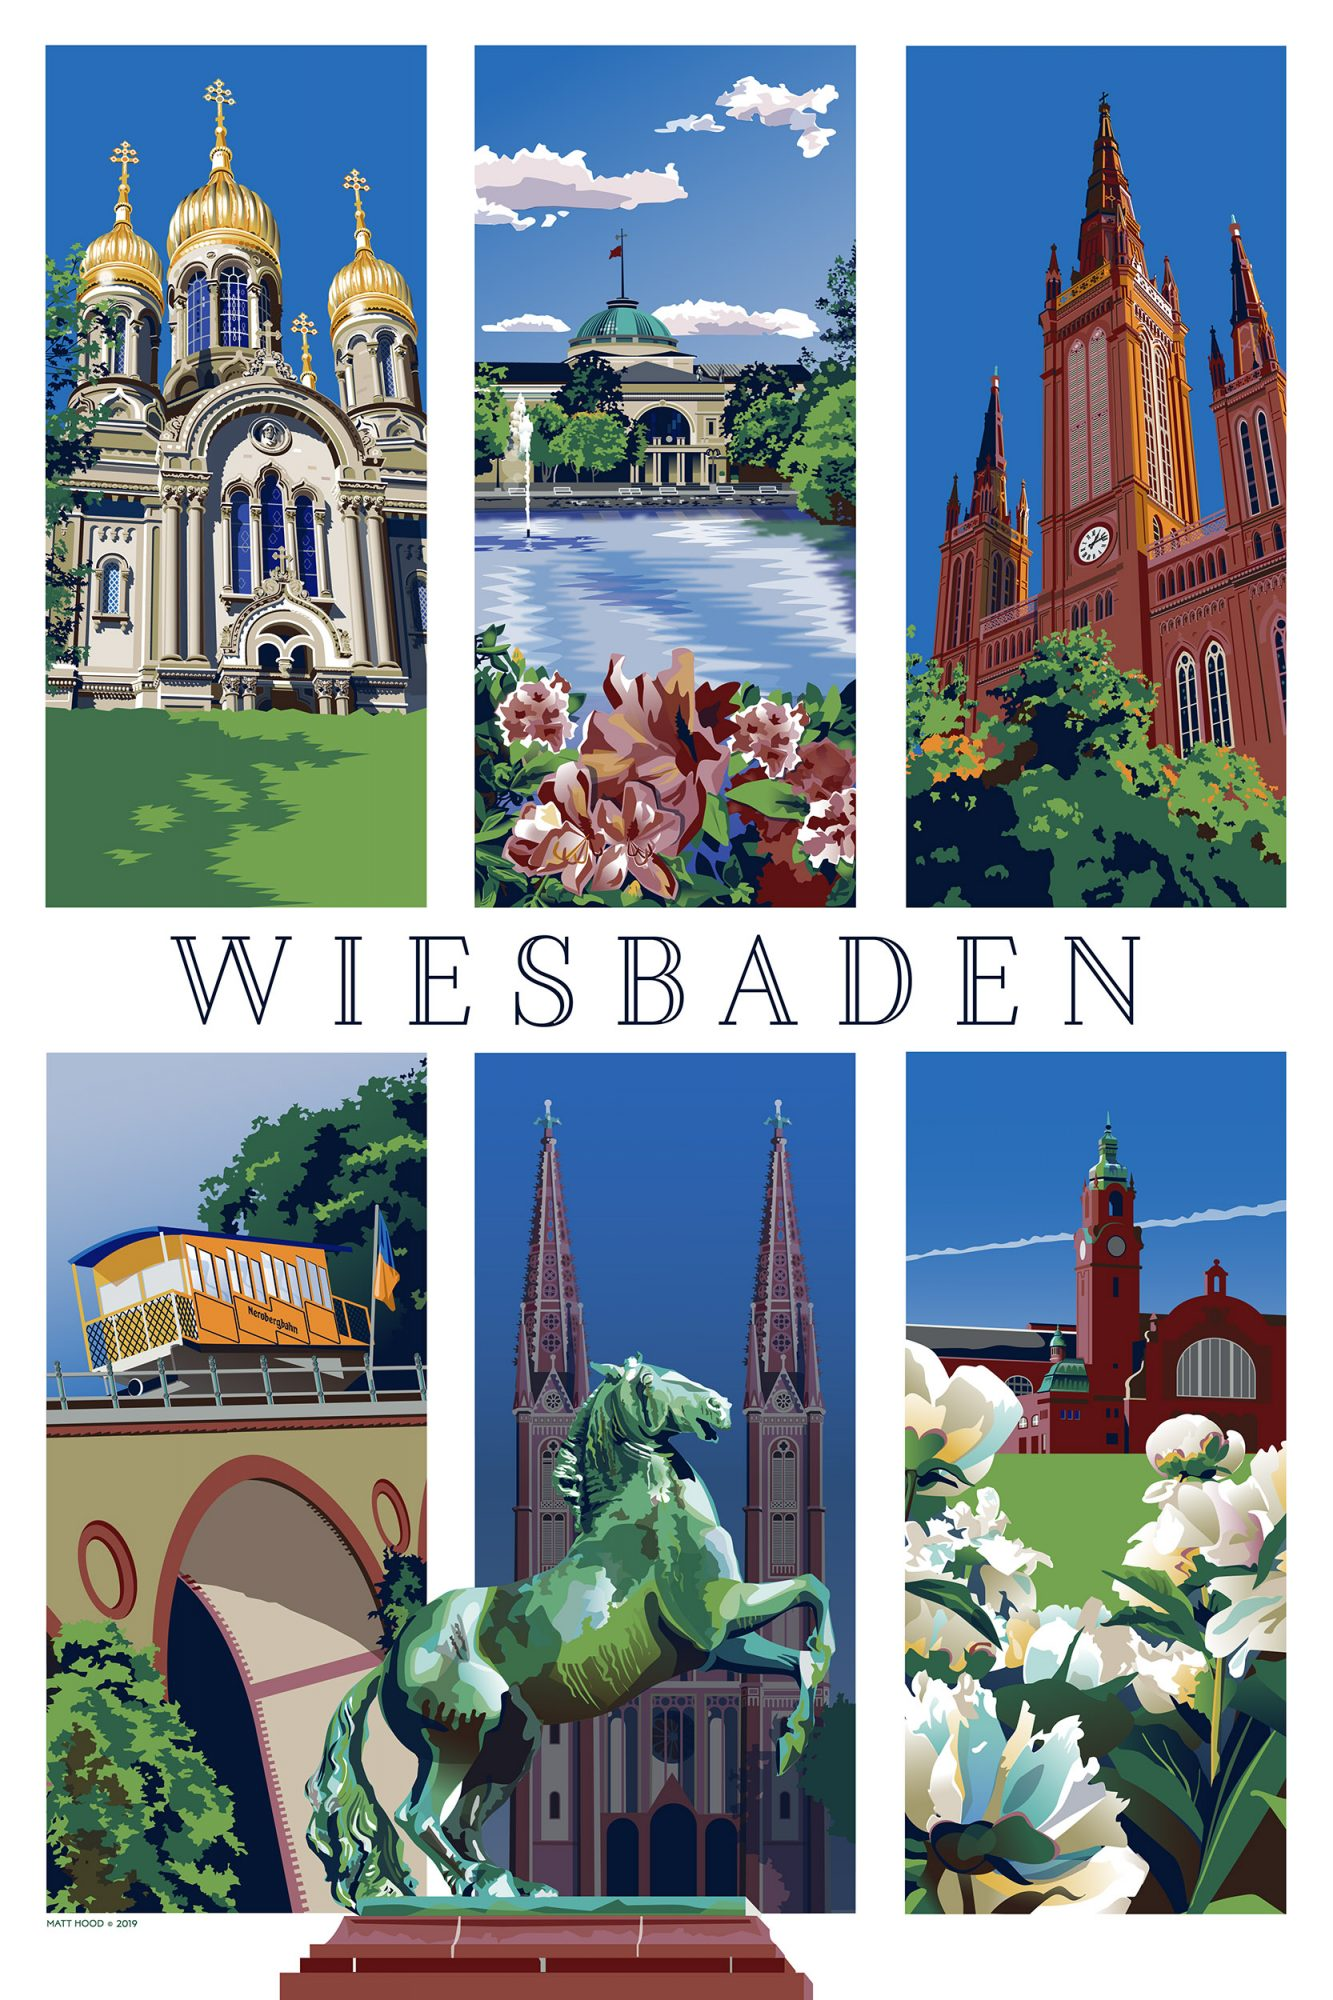 Wiesbaden Travel Poster by Matt Hood